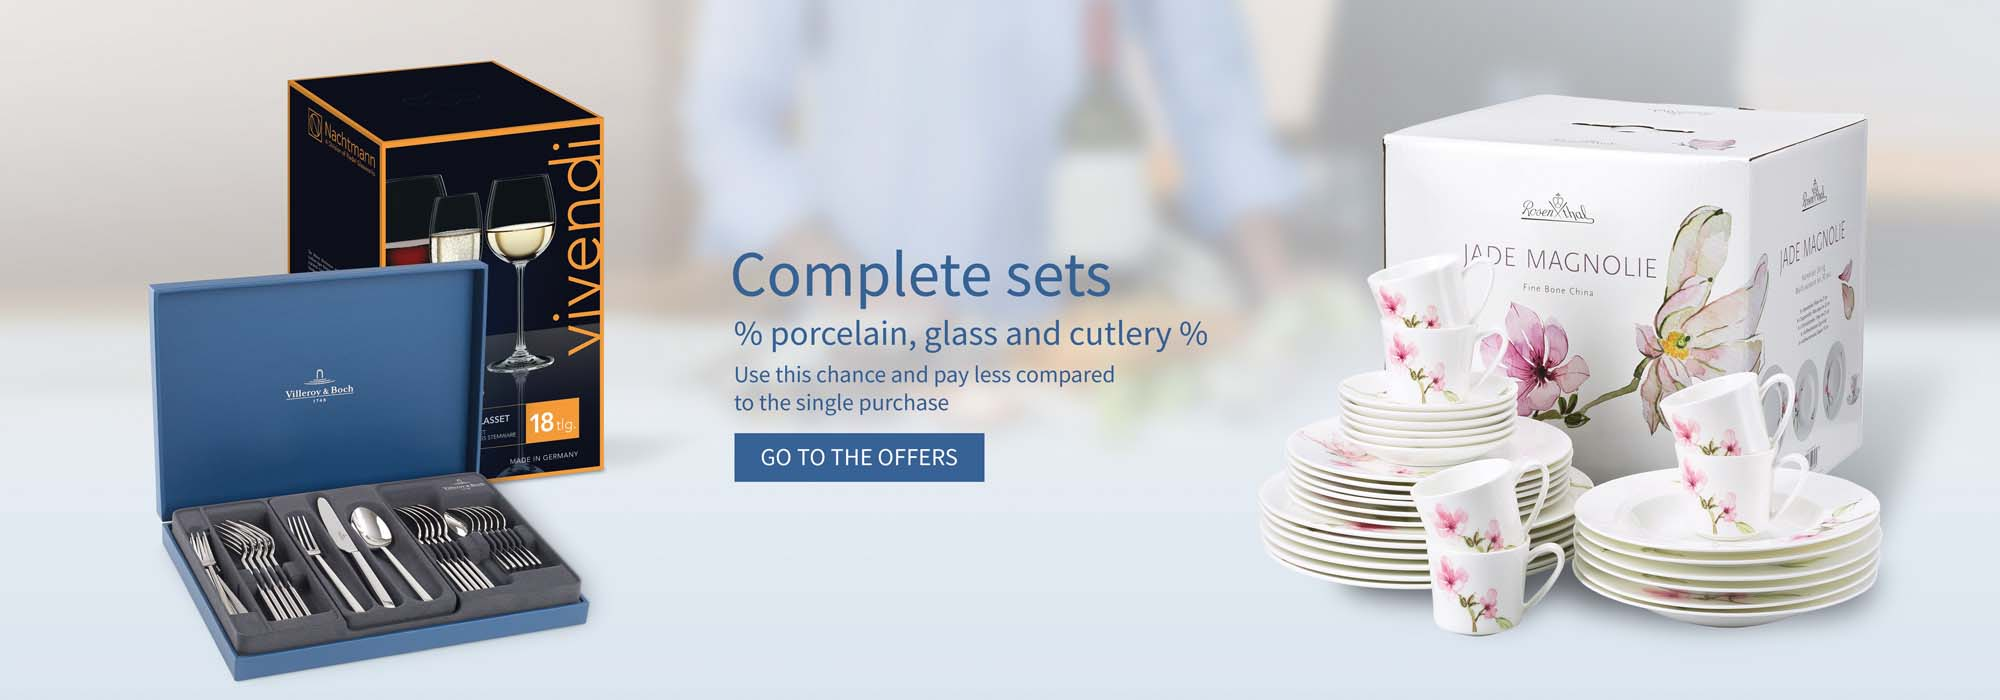 Complete sets of porcelain, glass and cutlery